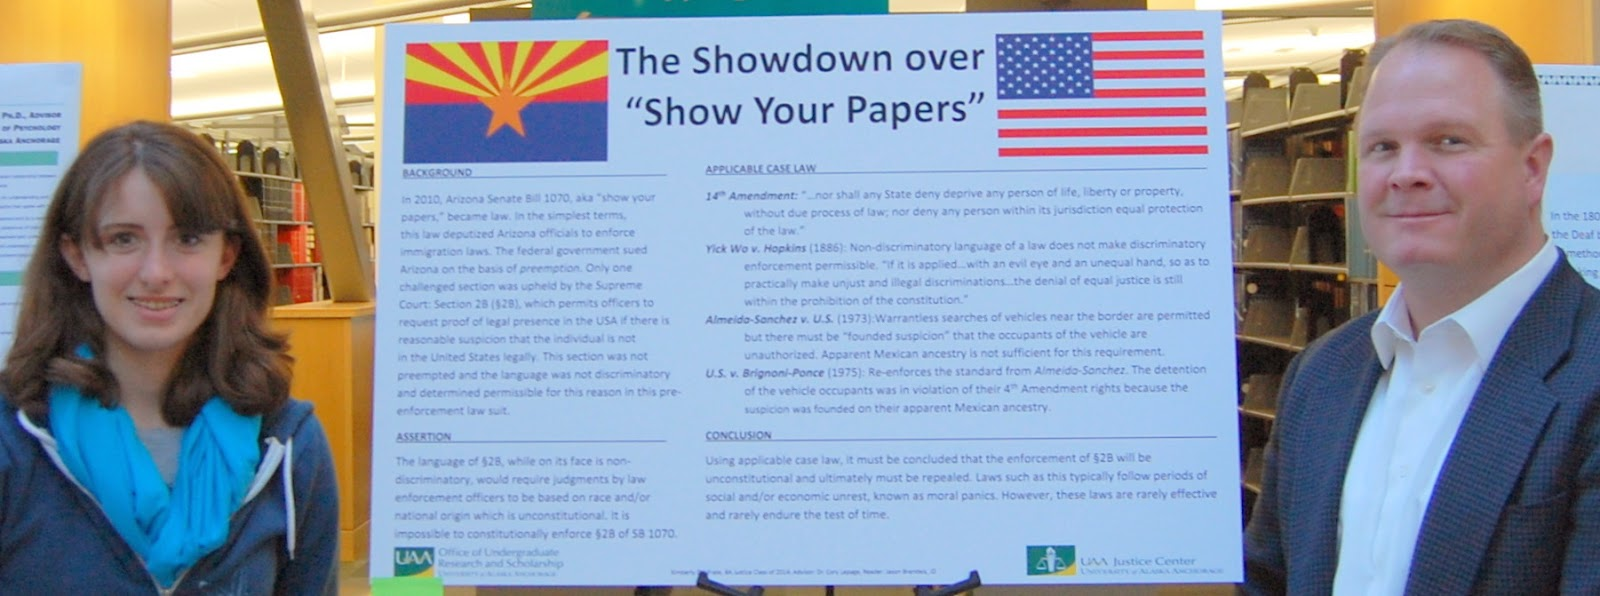 arizona sb 1070 research paper Arizona sb 1070 research paper - papers and essays at most affordable prices let professionals deliver their work: get the necessary report here and wait for the.